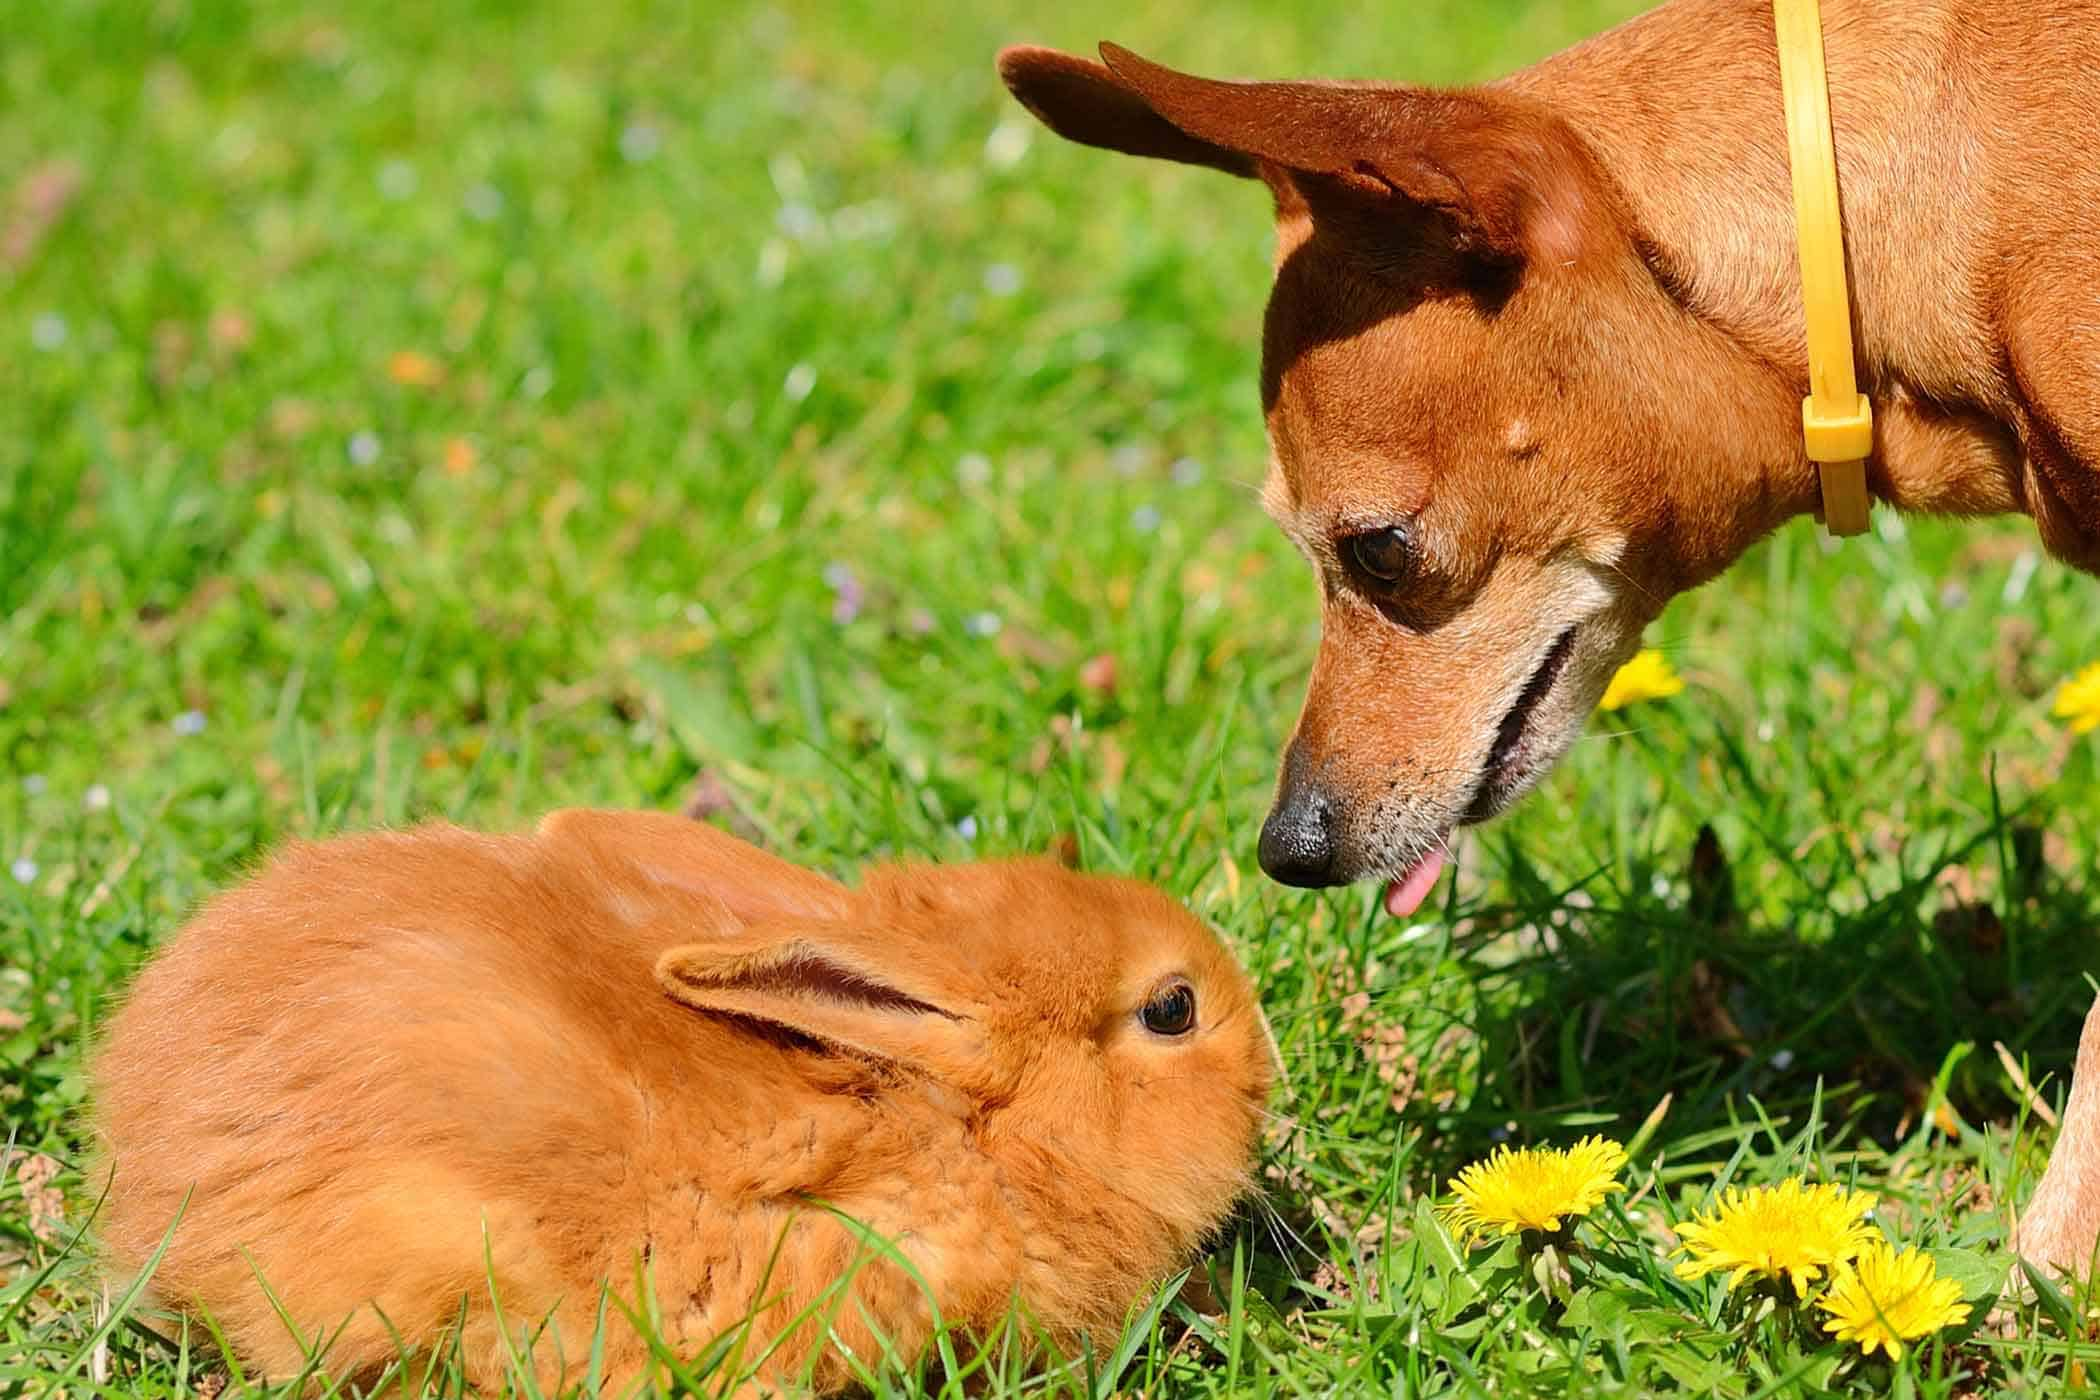 Dog Chasing Rabbits: What To Do